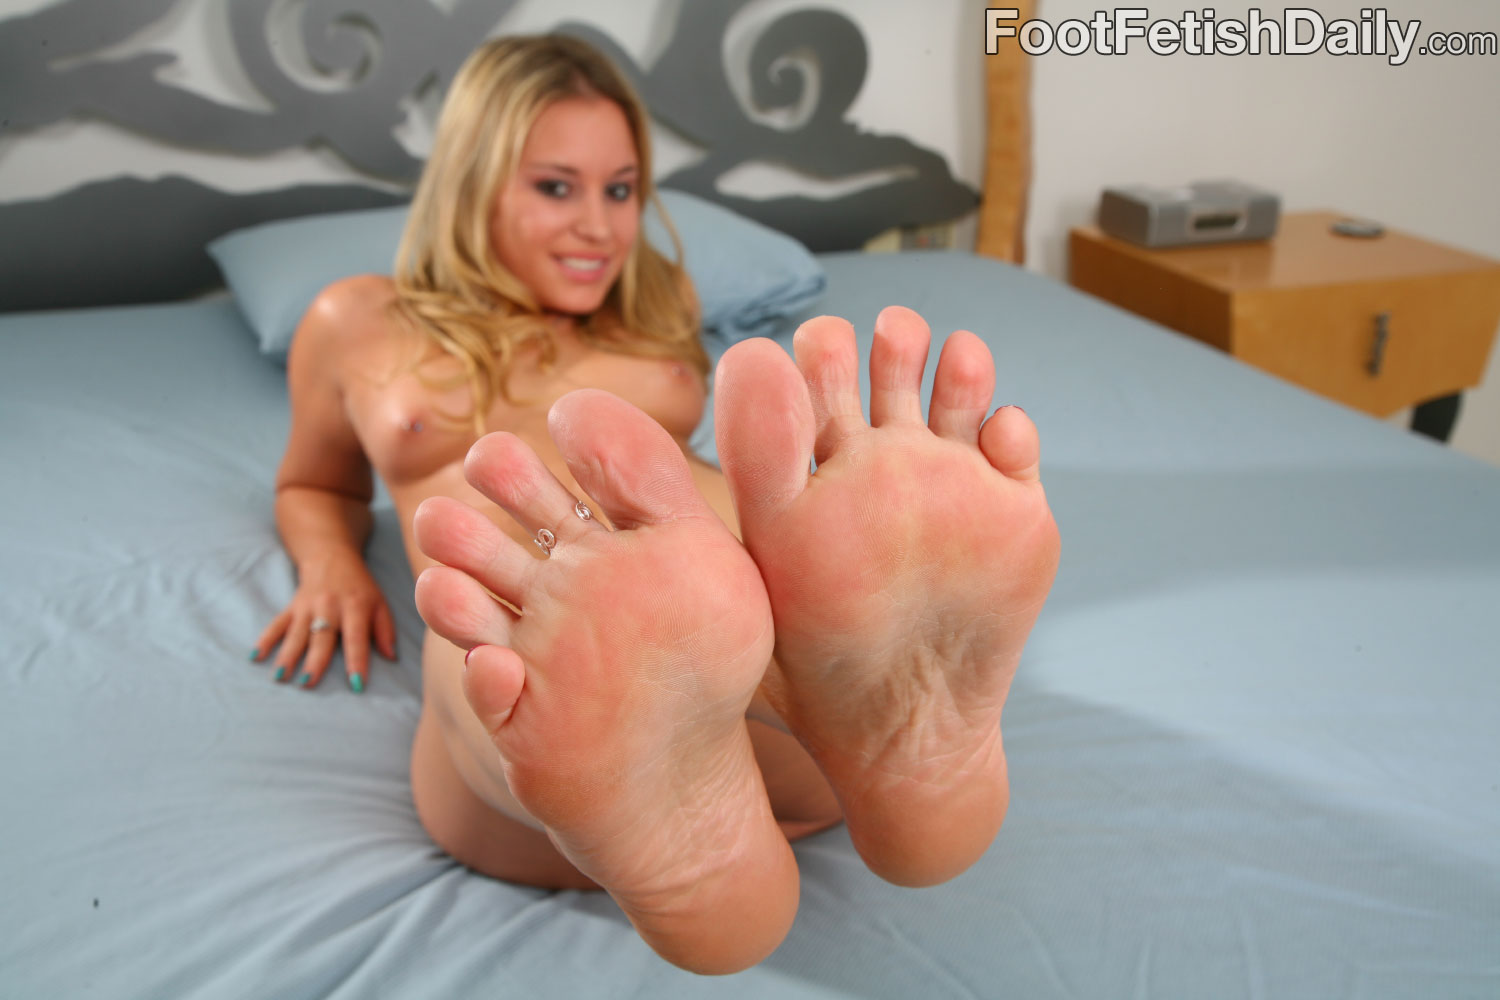 Foot fetish sex pics